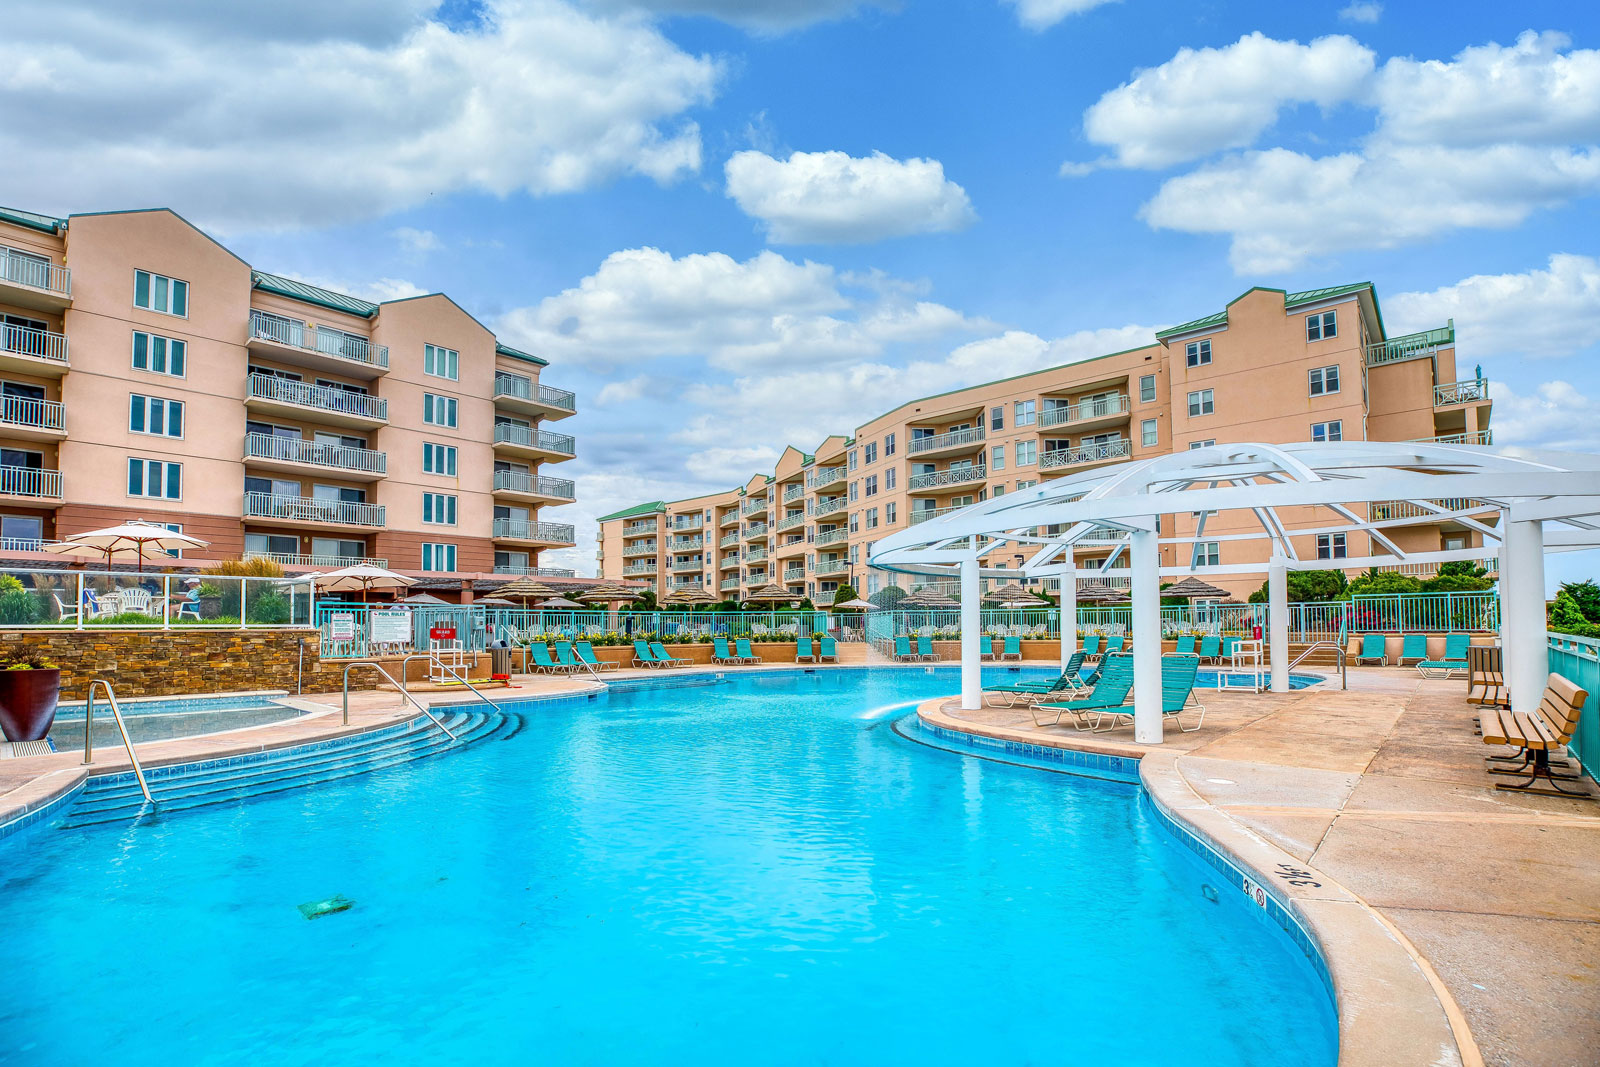 Seapointe North Beach Wildwood Crest Vacation Als